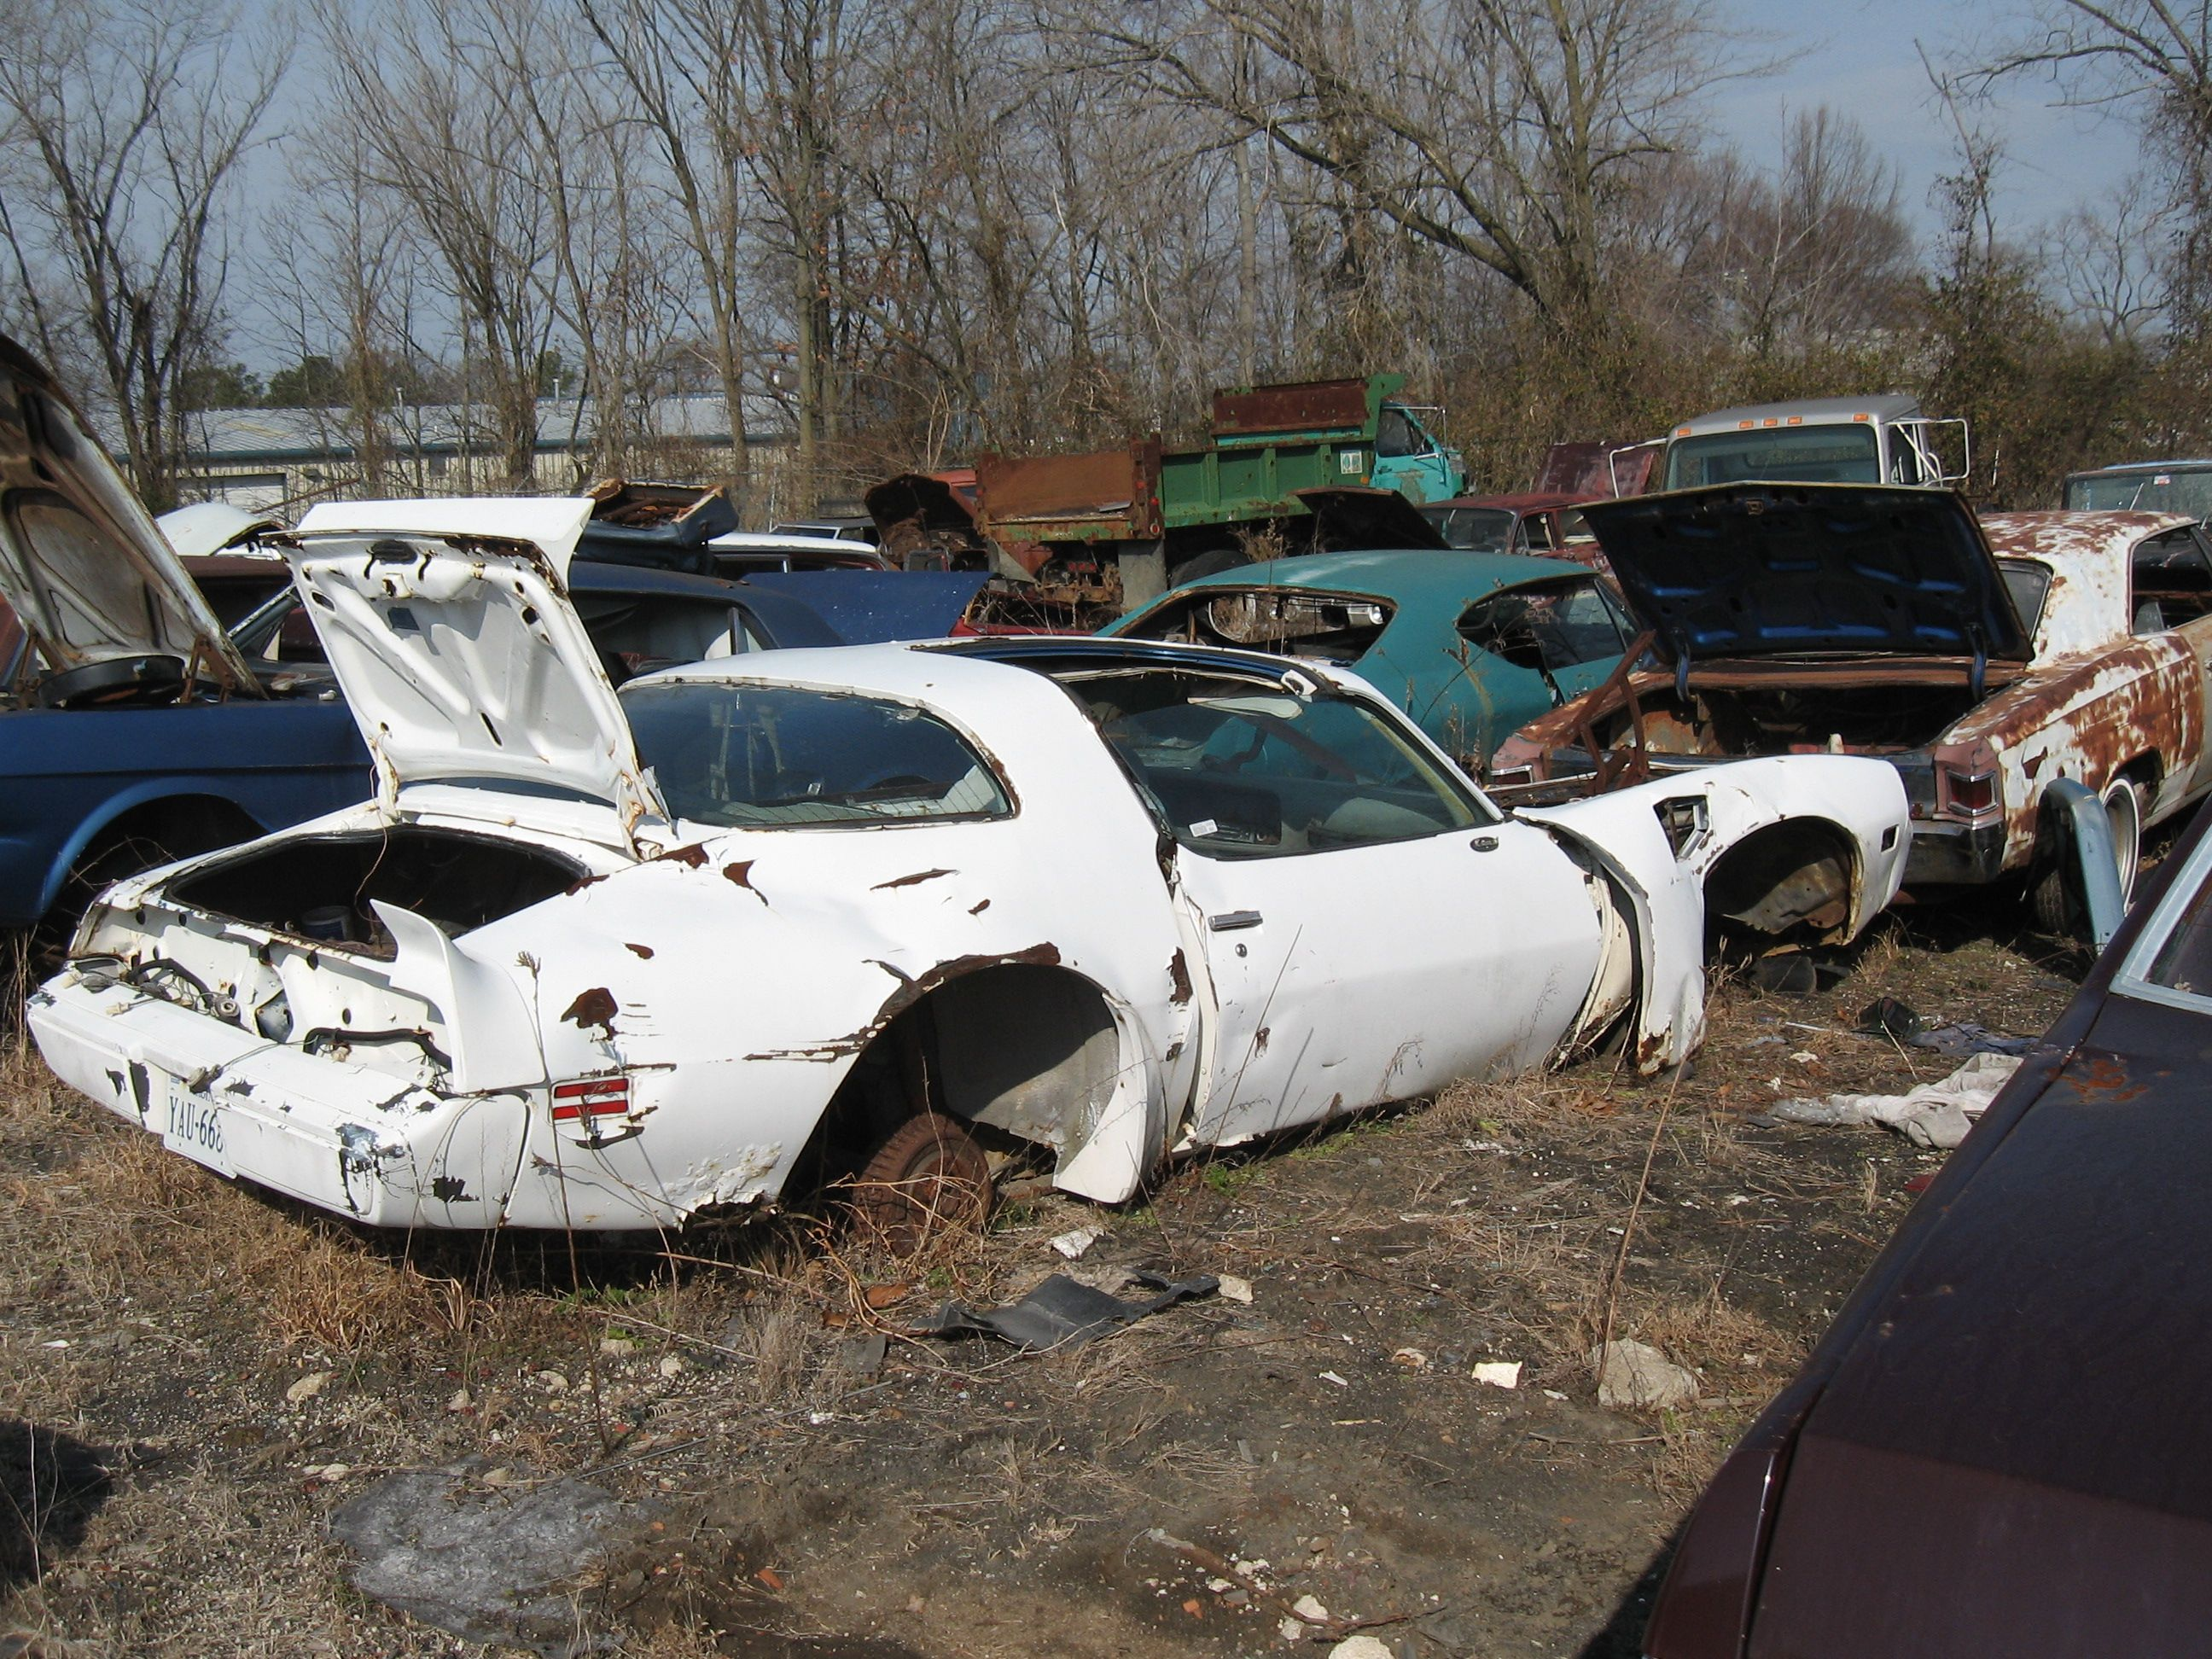 1968 Ford Mustang junkyard cars picture | SuperMotors.net | Auto ...